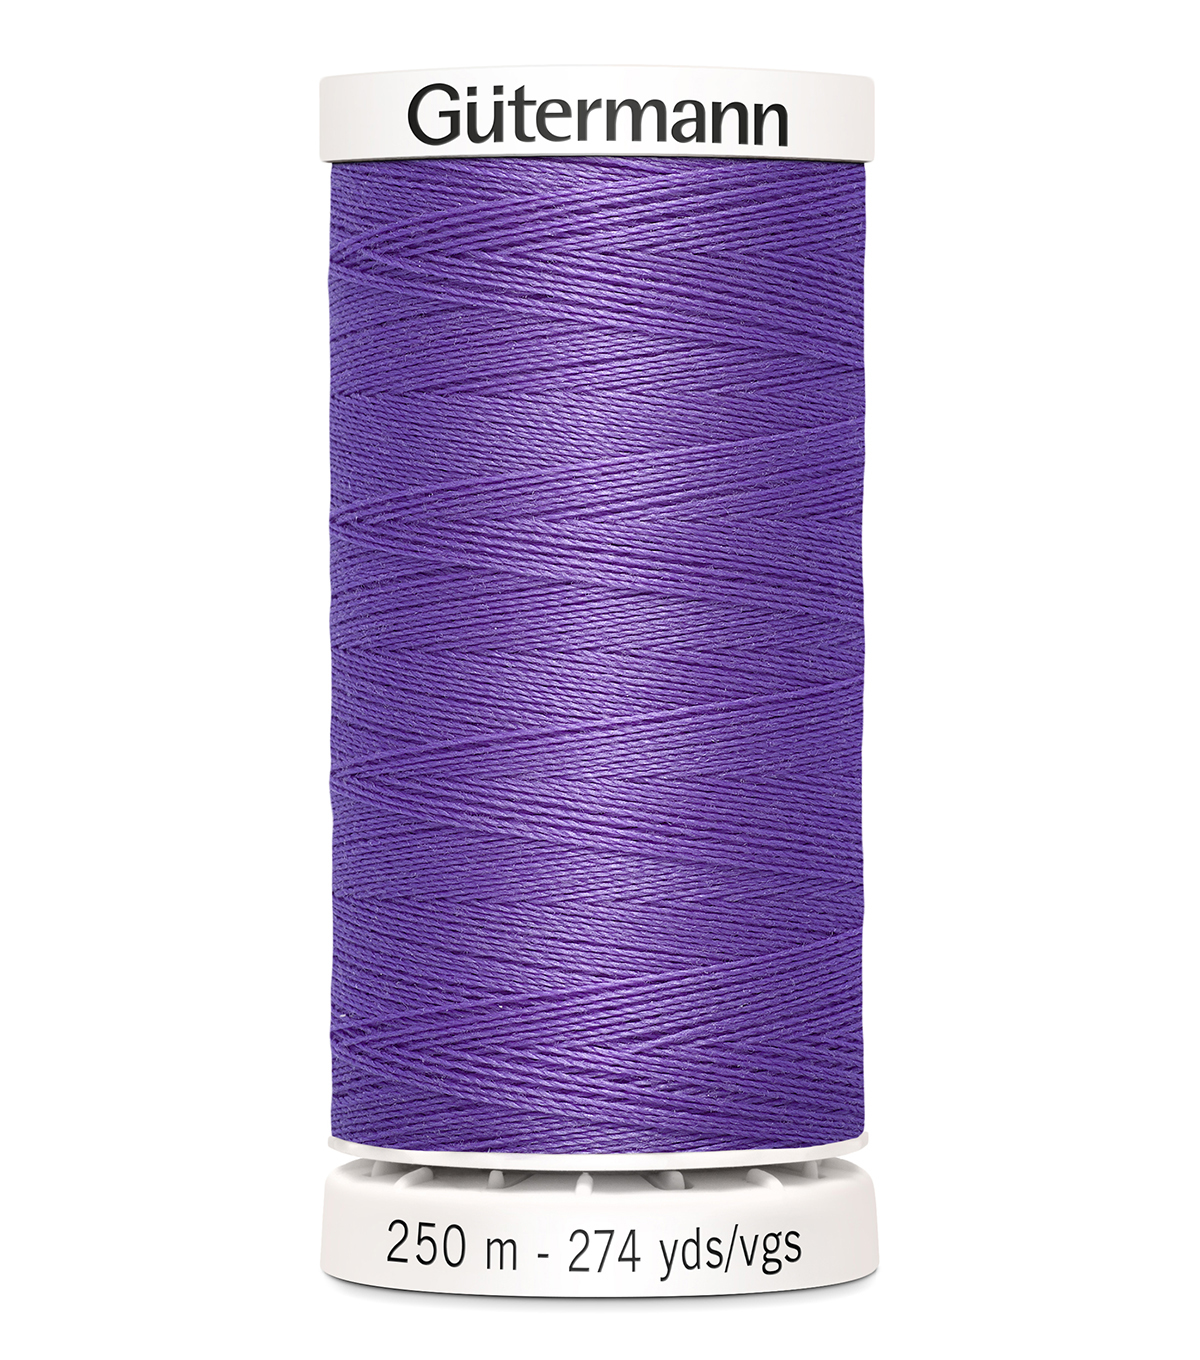 Gutermann Sew-All Thread 273 Yds-(300 & 900 series) Cool Tones , Parma Village #925